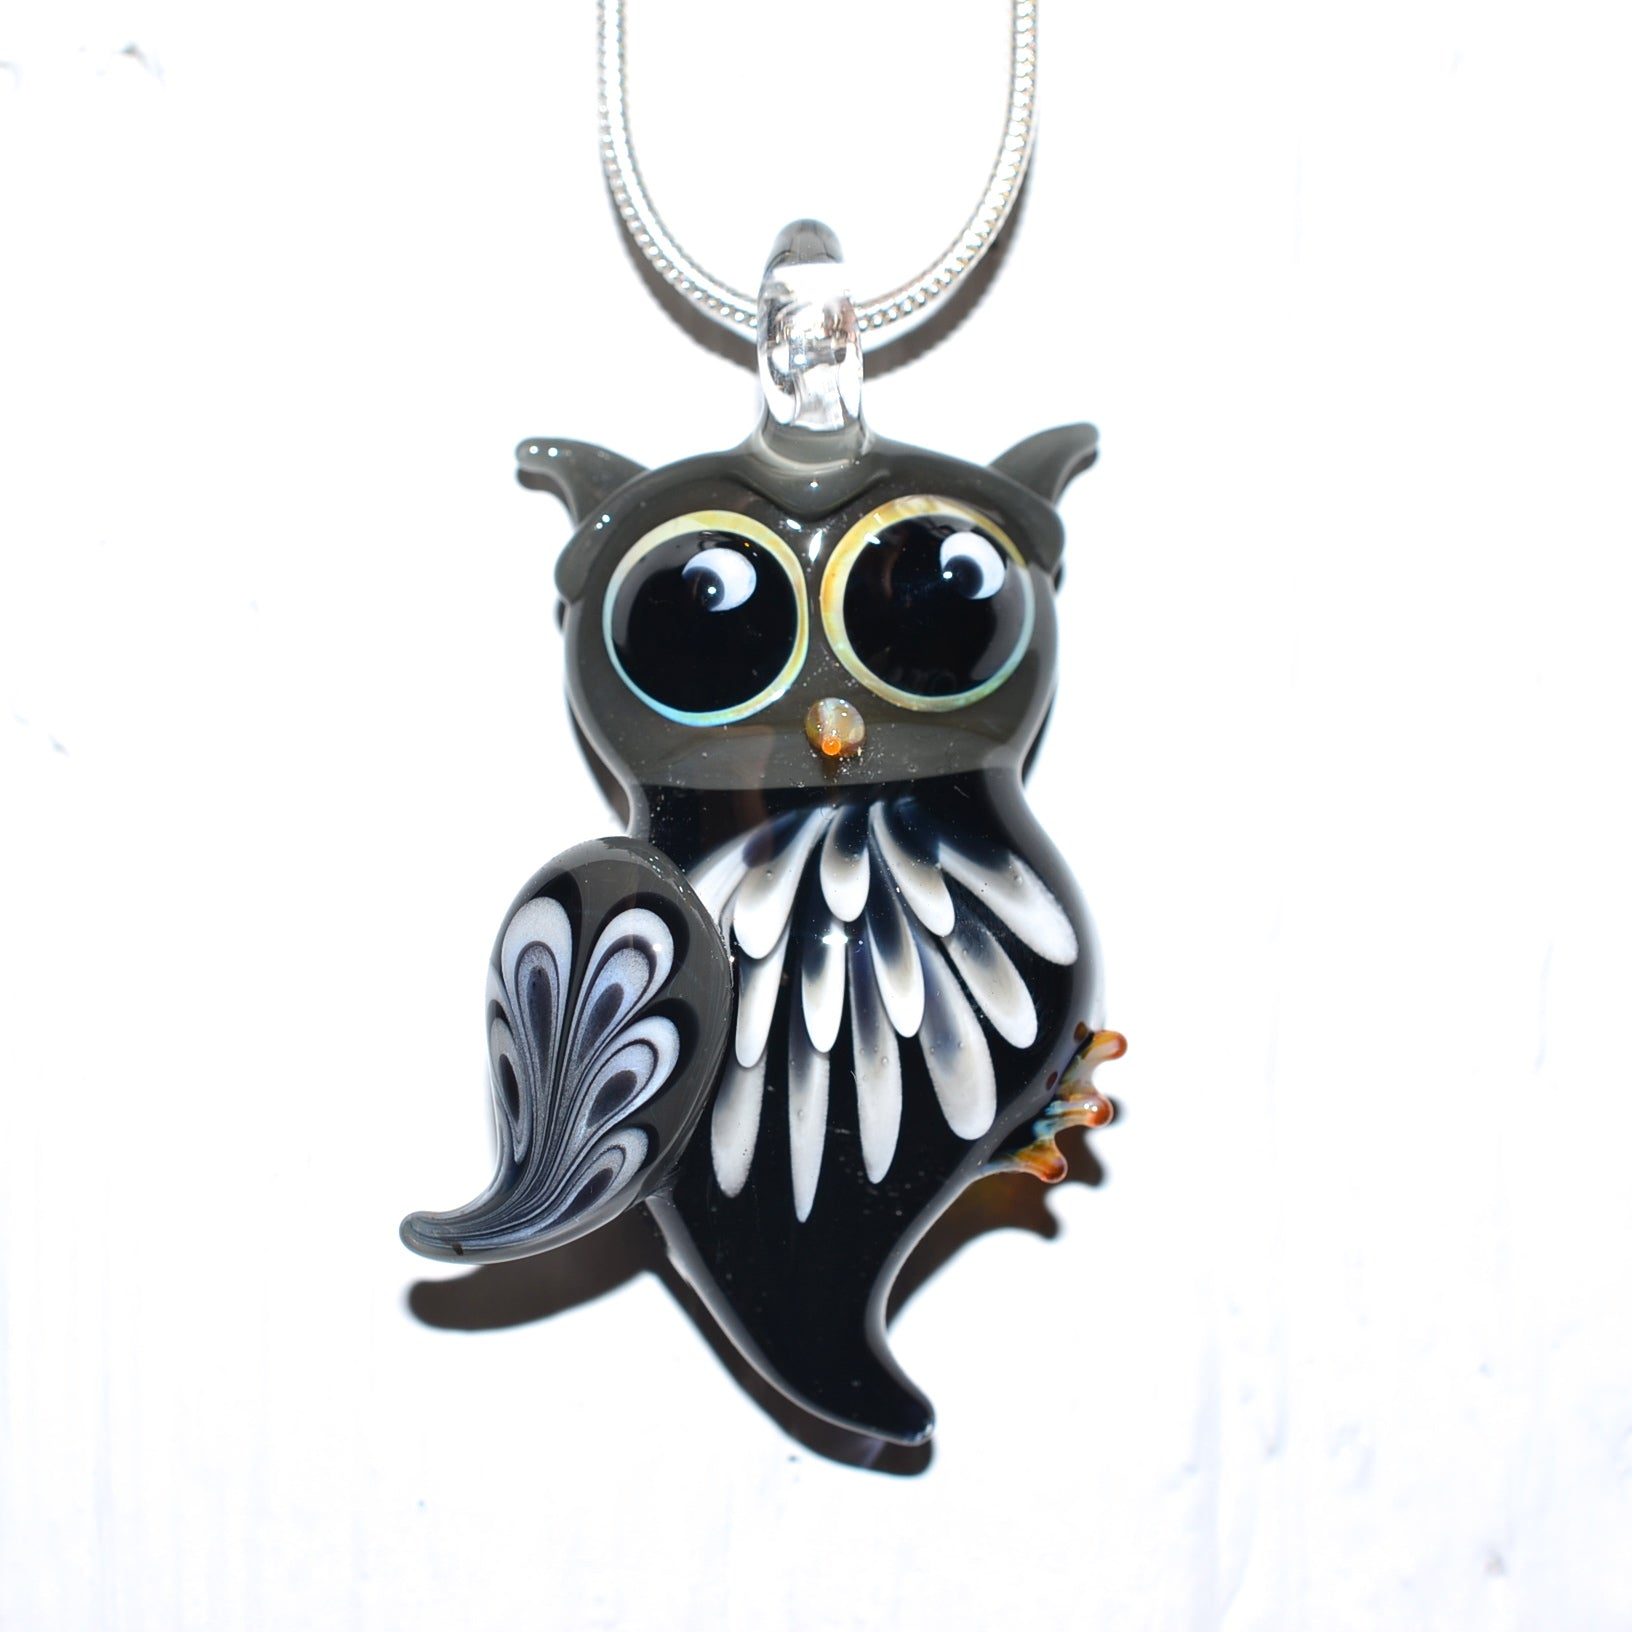 michelle fe artist shop regional local necklace precious santa artists jewelry pendant handmade by owl tapia